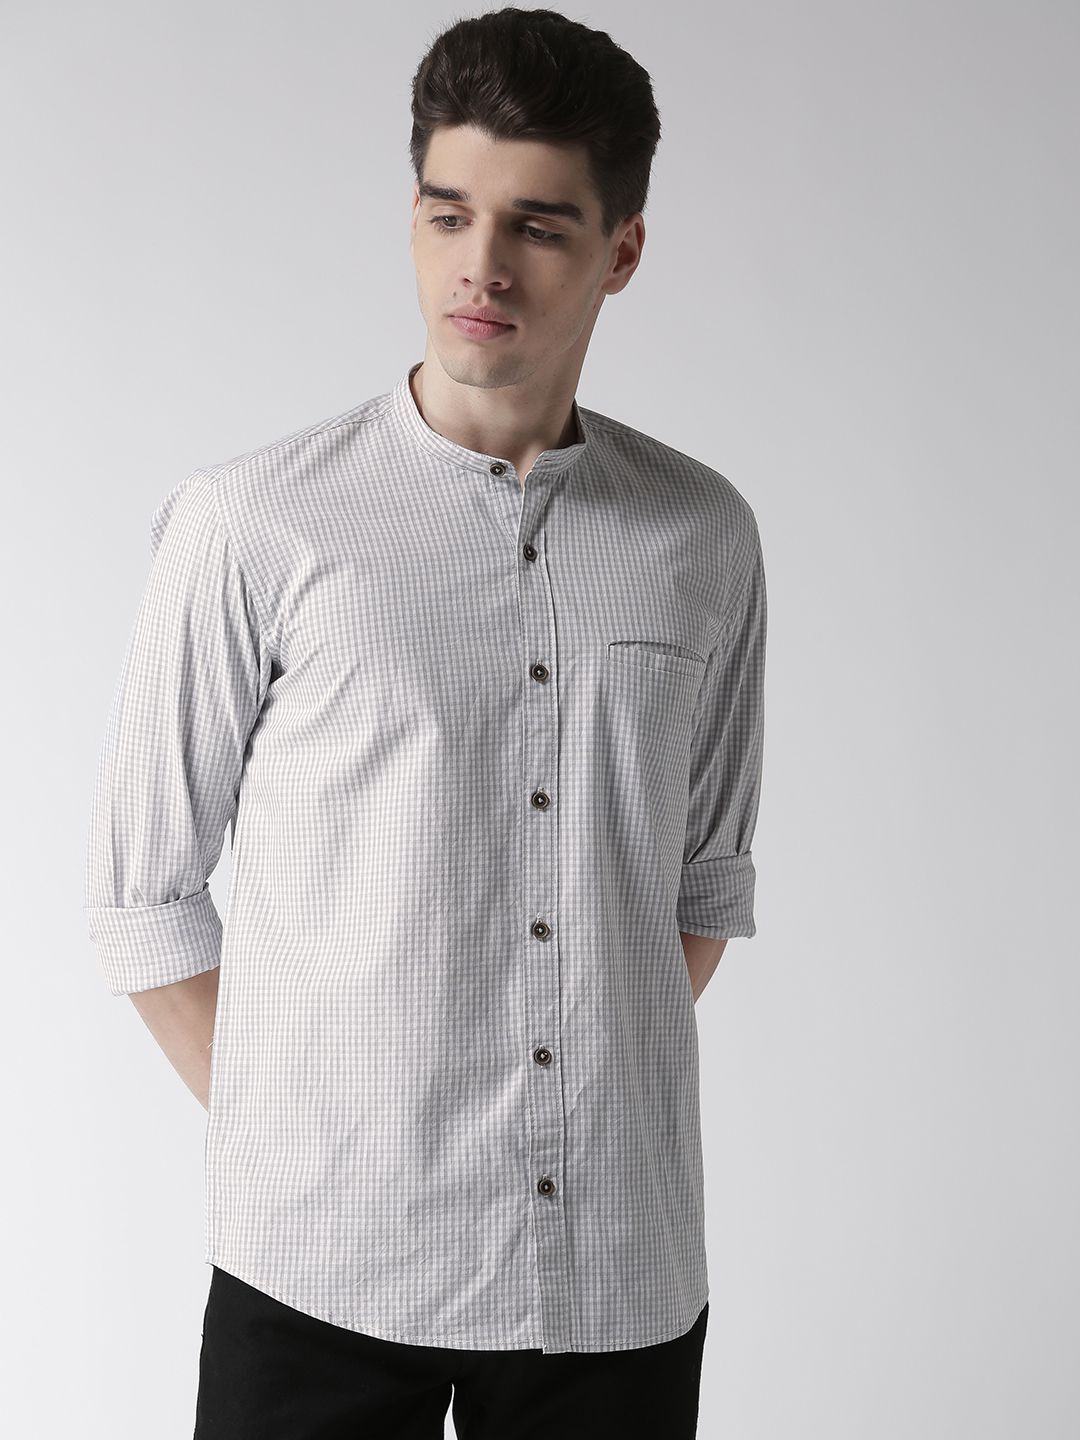 Richlook 100 Percent Cotton Grey Checks Shirt